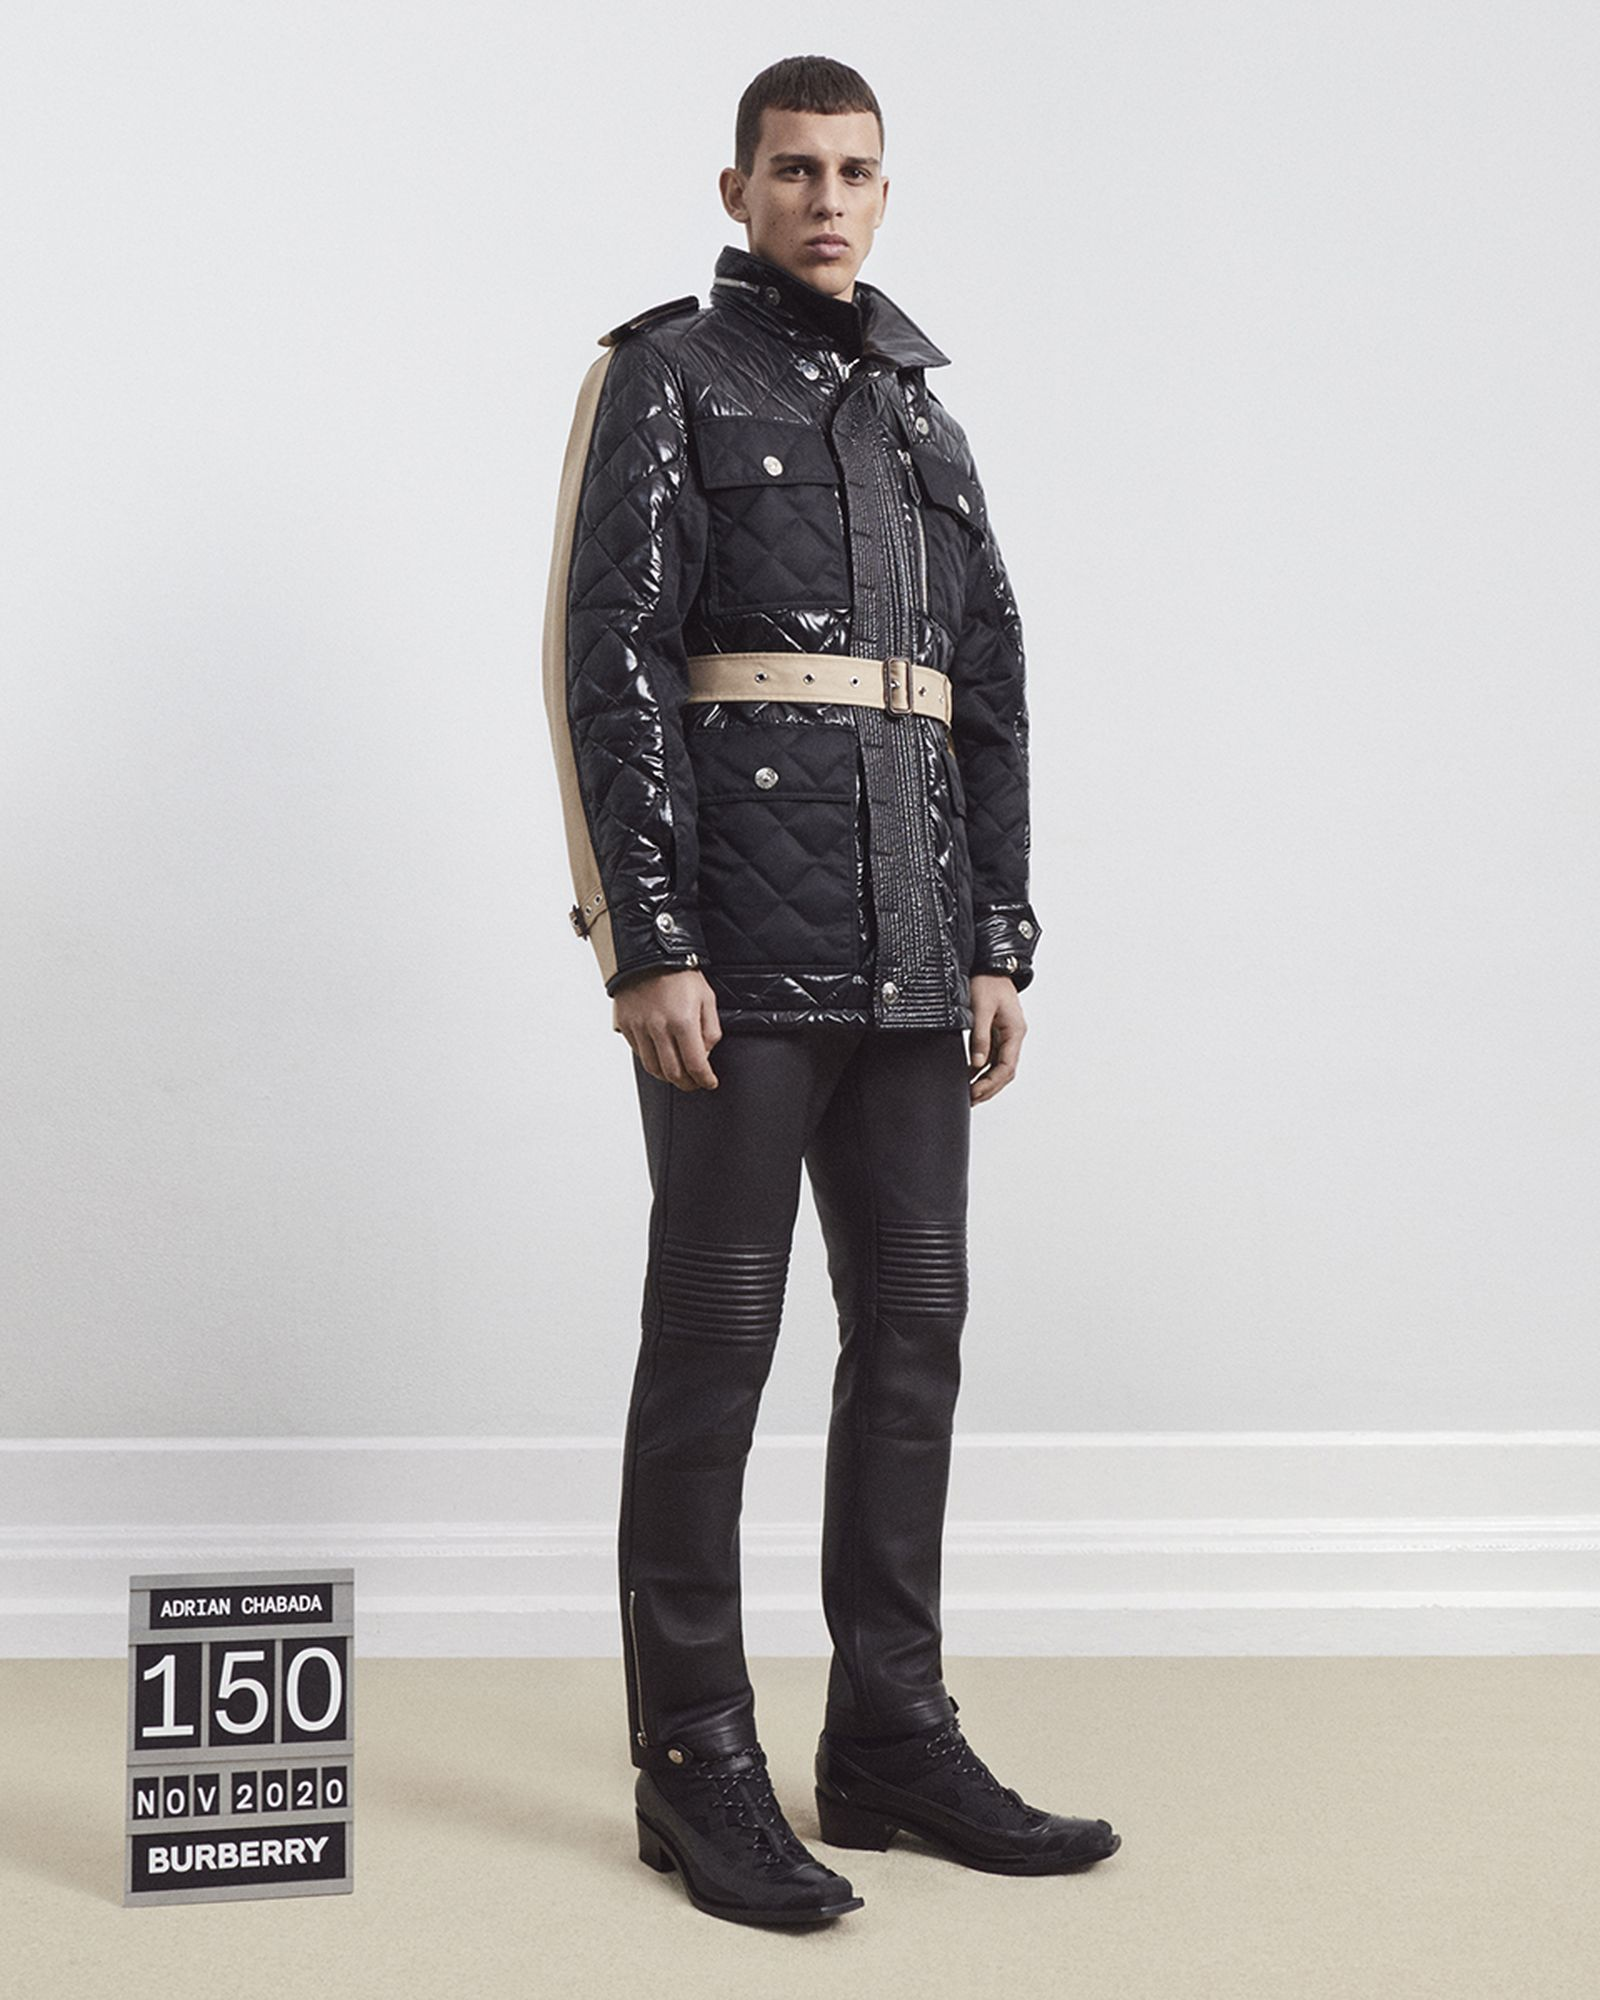 burberry-future-archive-collection-13